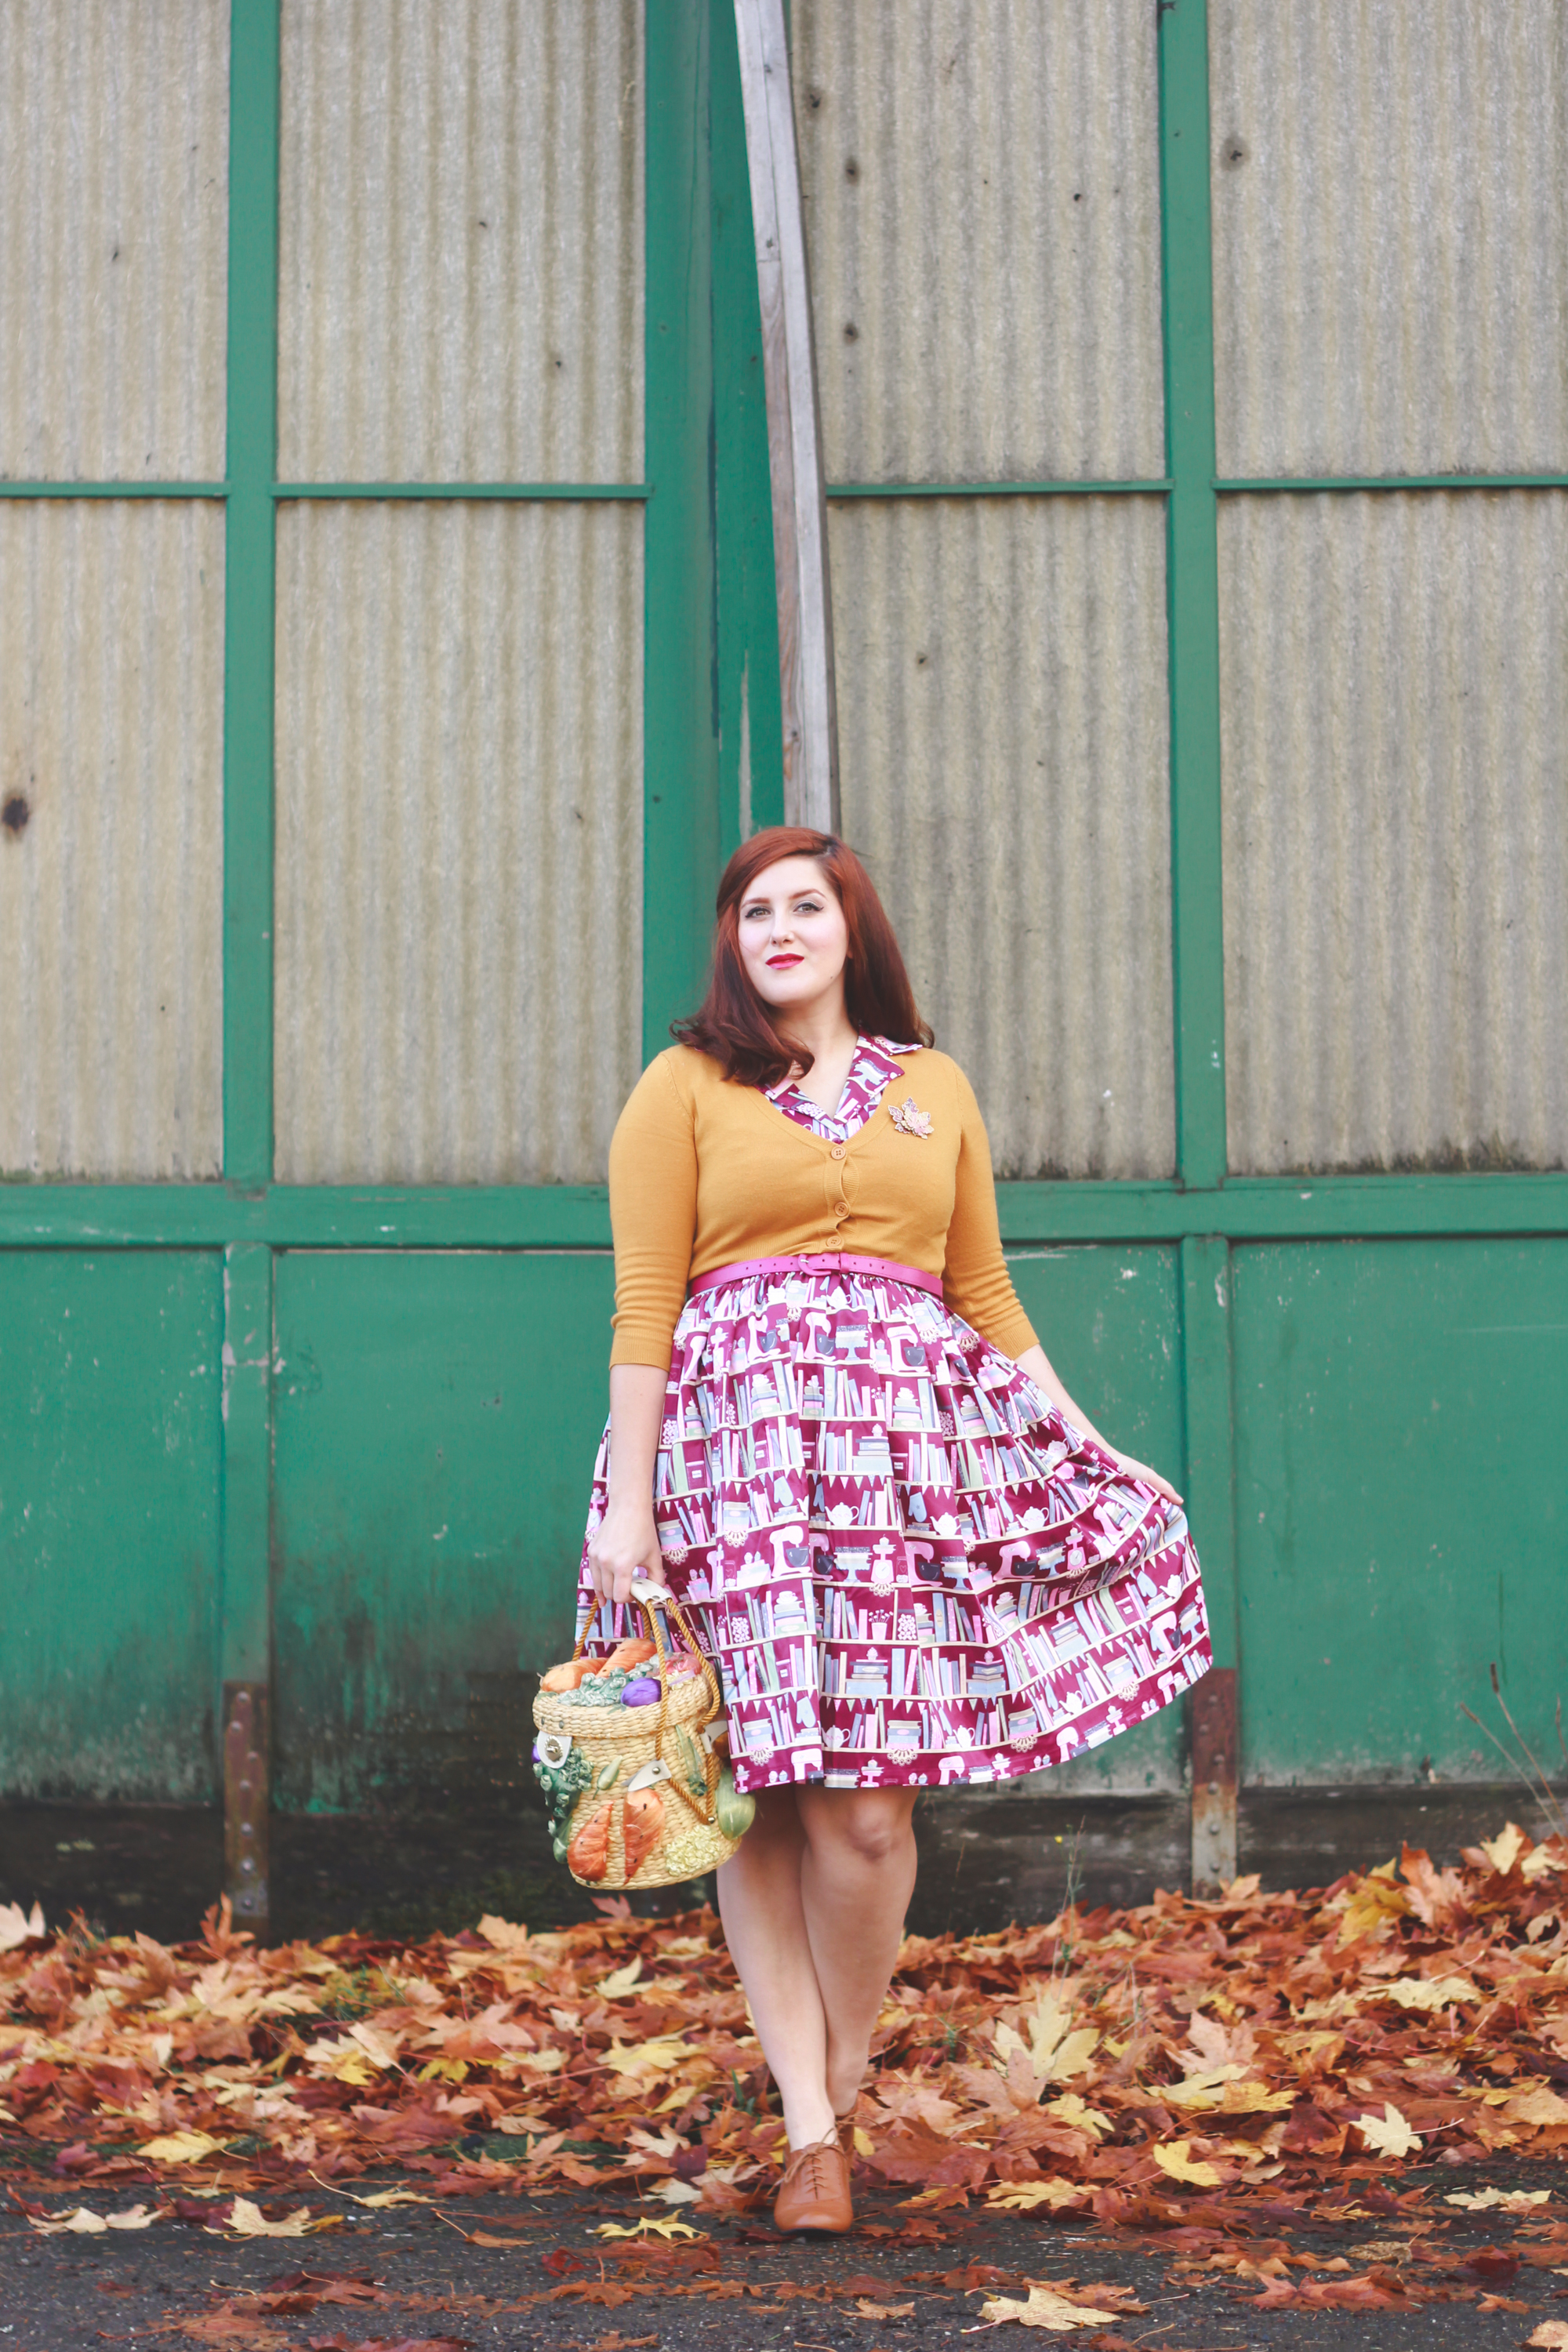 Modern Vintage Boutique Reviews - Lindy bop sent me a dress of my choice for review all opinions are my own